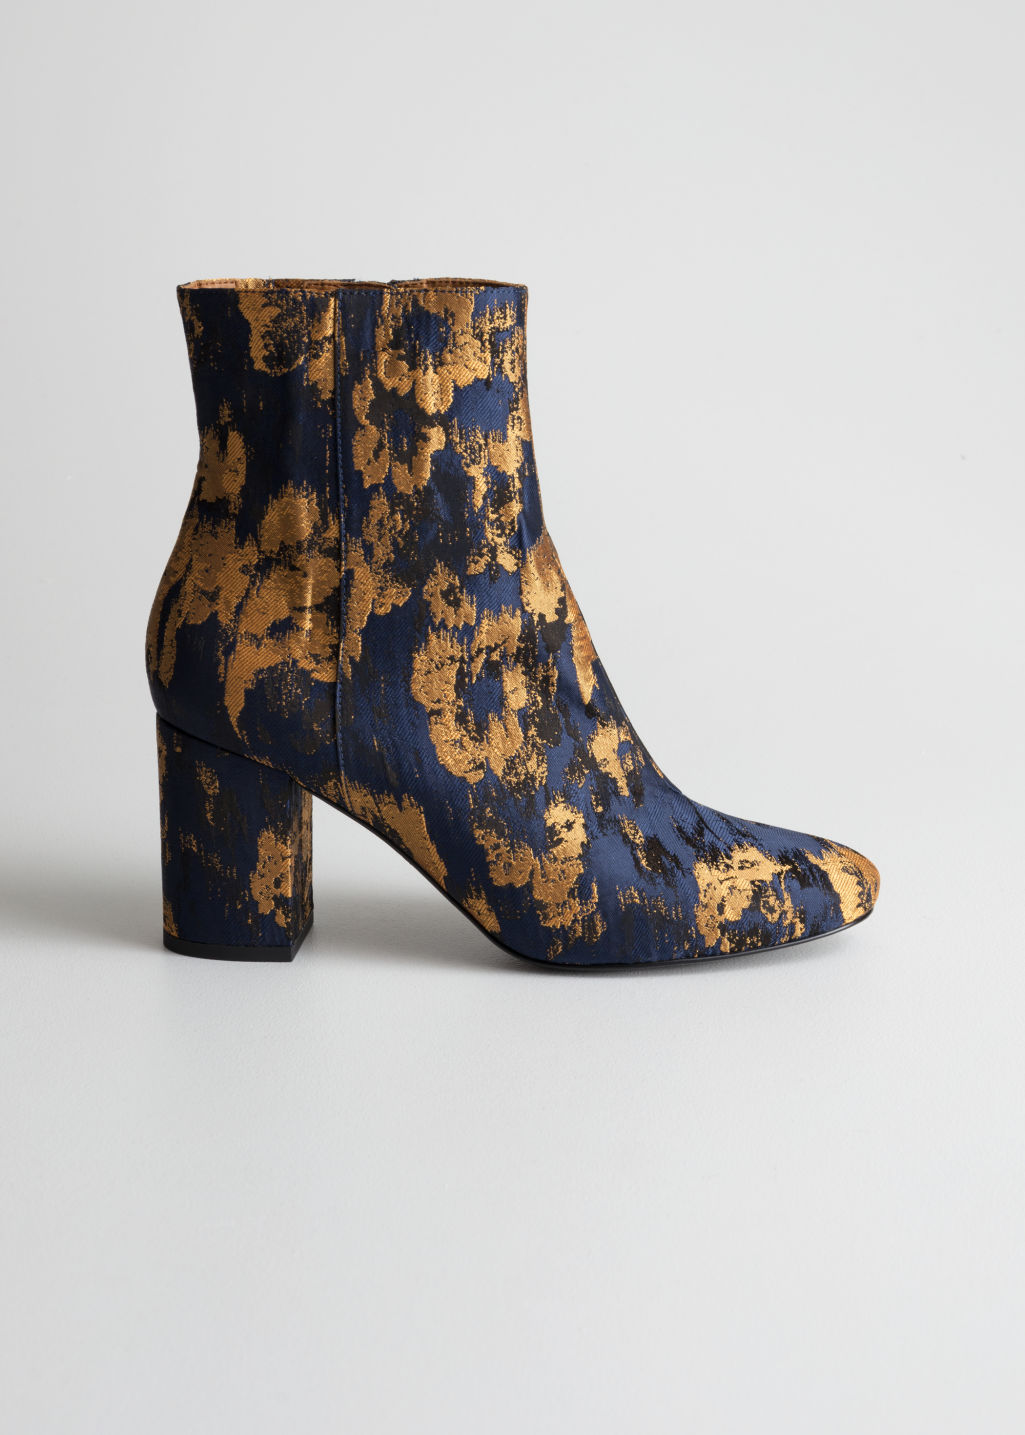 4490b76ffb8 Jacquard Ankle Boots - Blue - Ankleboots - & Other Stories